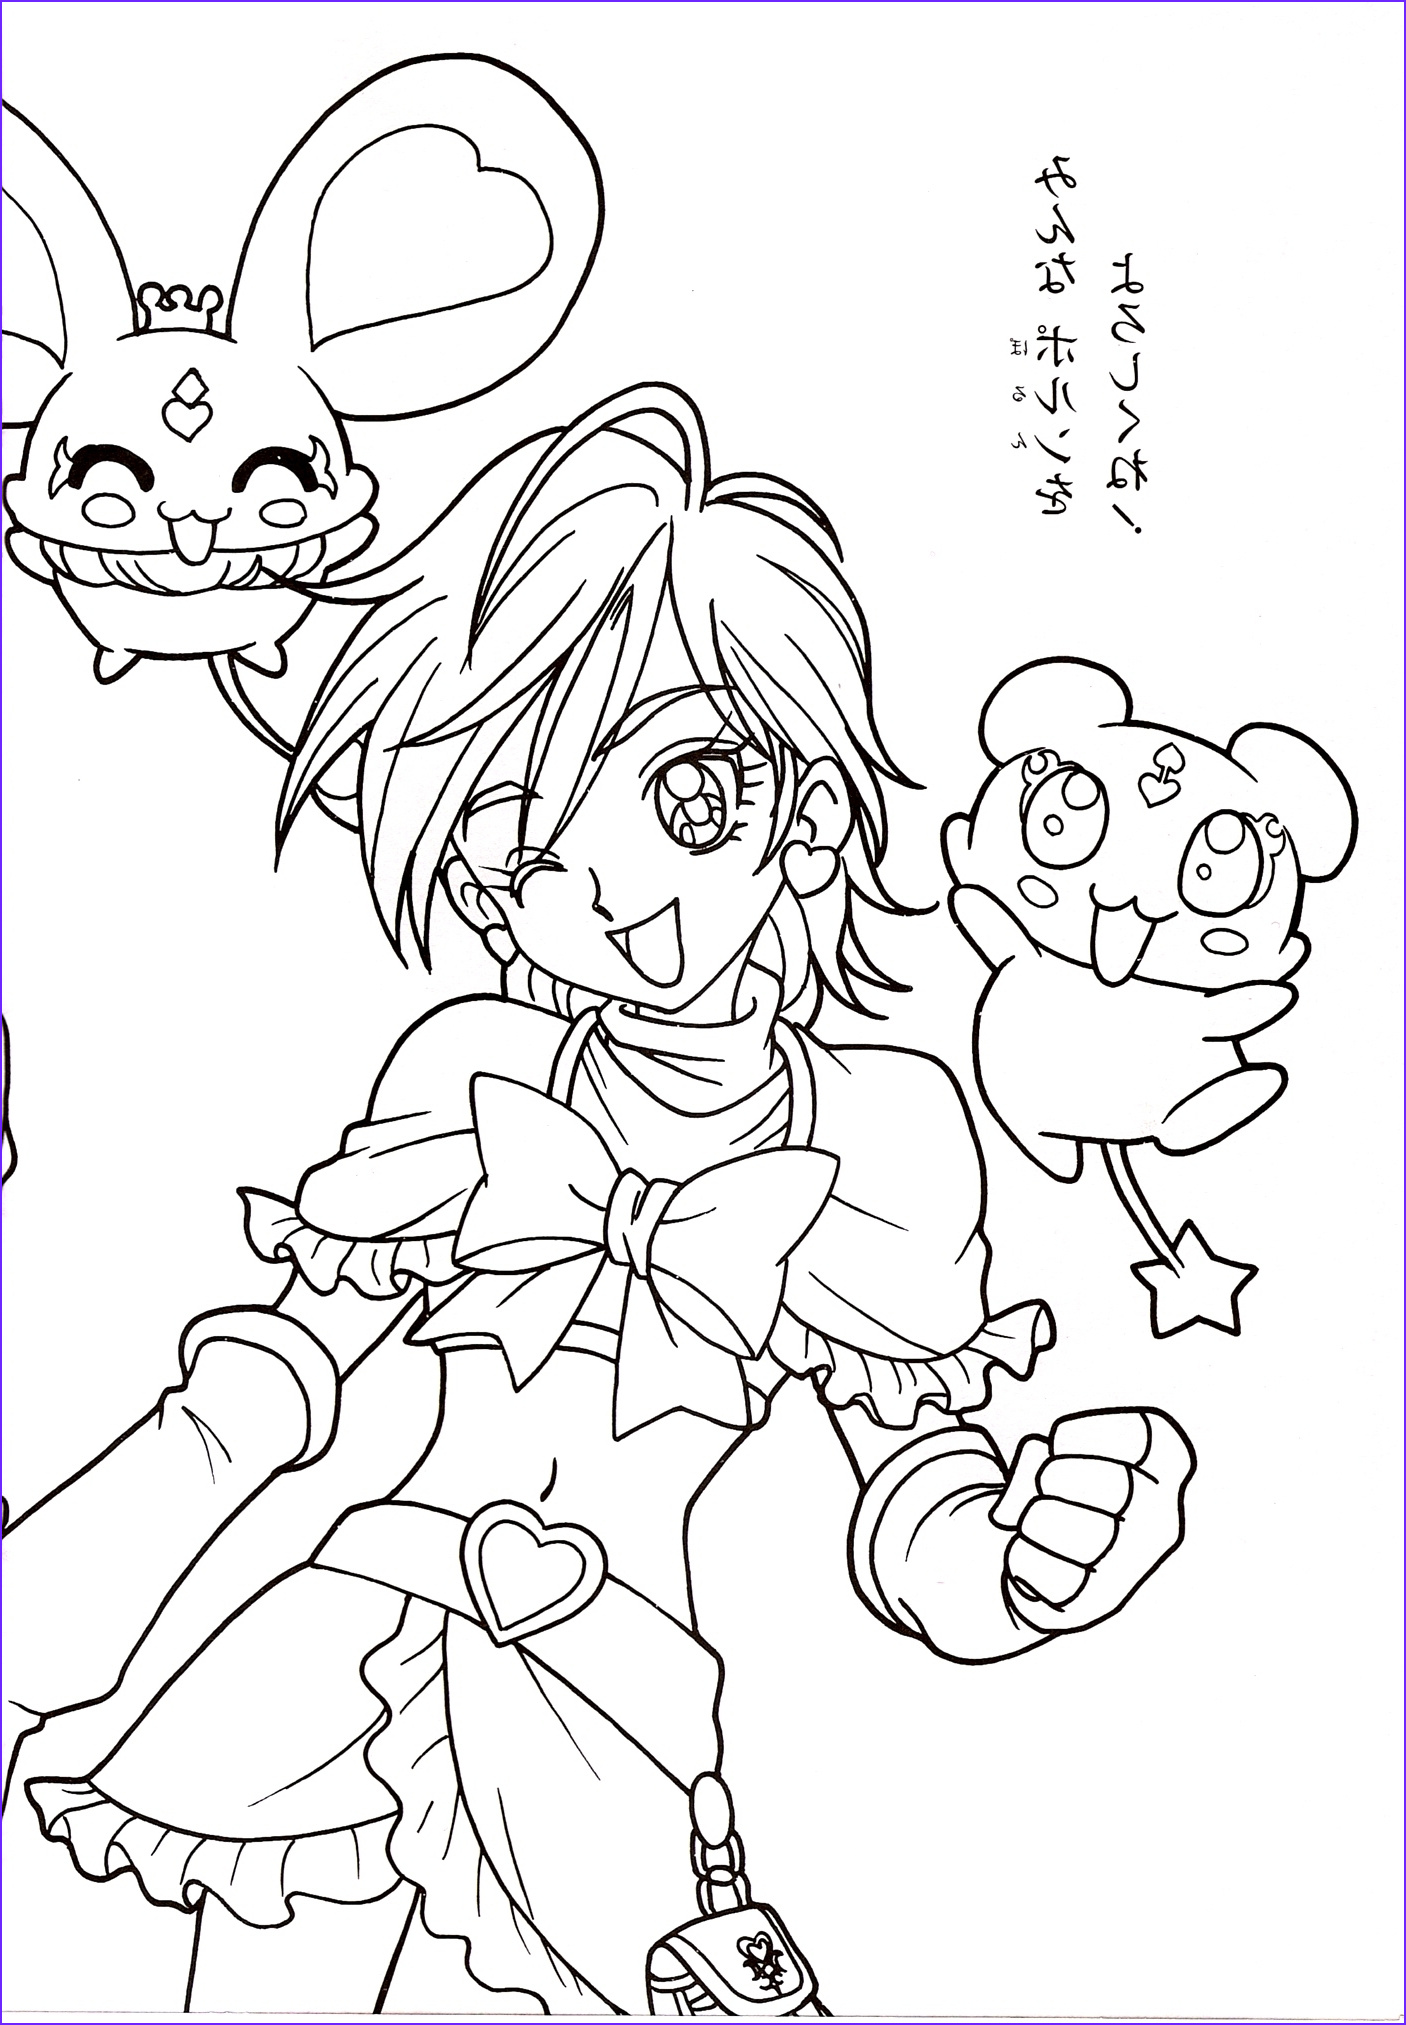 Precure Coloring Page Awesome Photos Smile Precure Coloring Coloring Pages